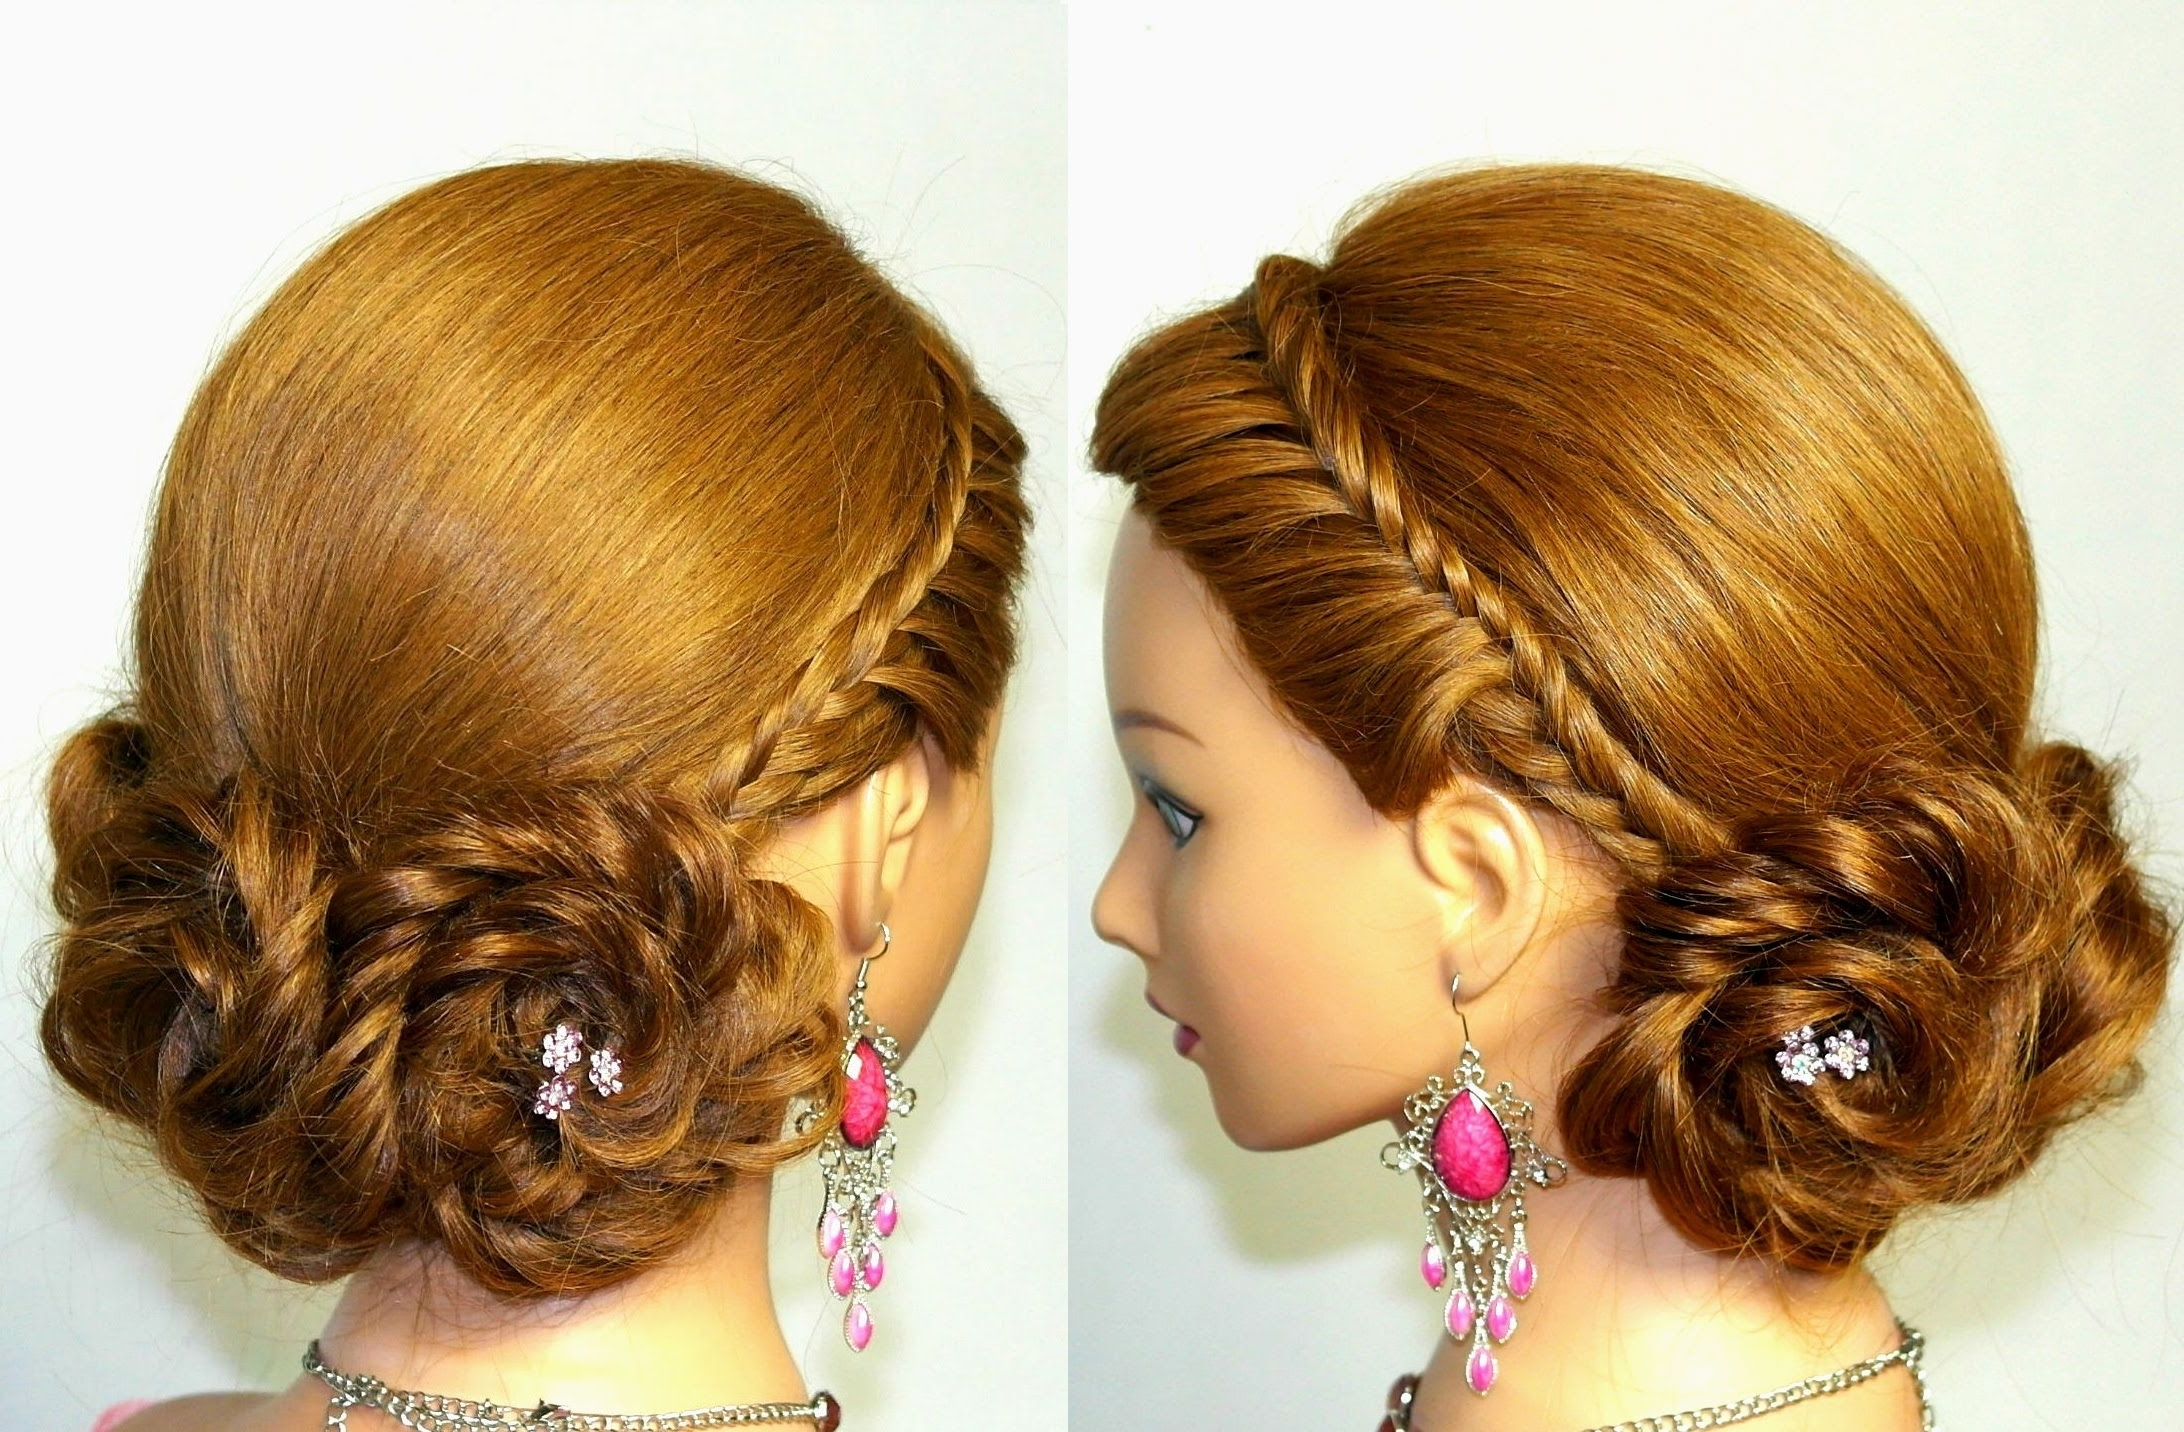 Cute Hairstyle For Long Hair (View 8 of 15)